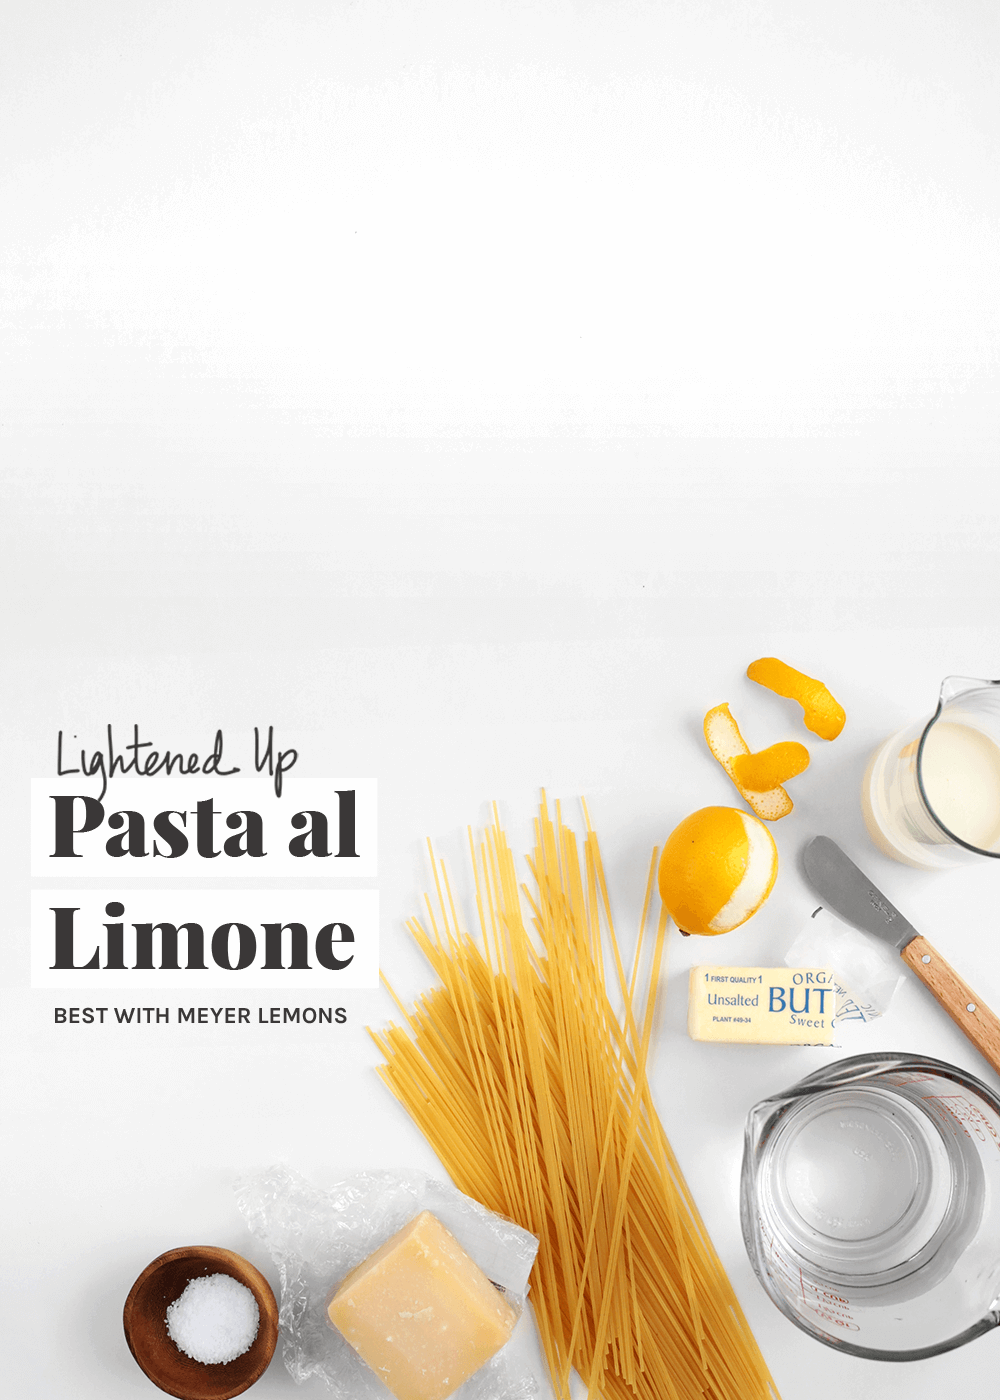 how to make lighted up pasta al limone recipe from the faux martha